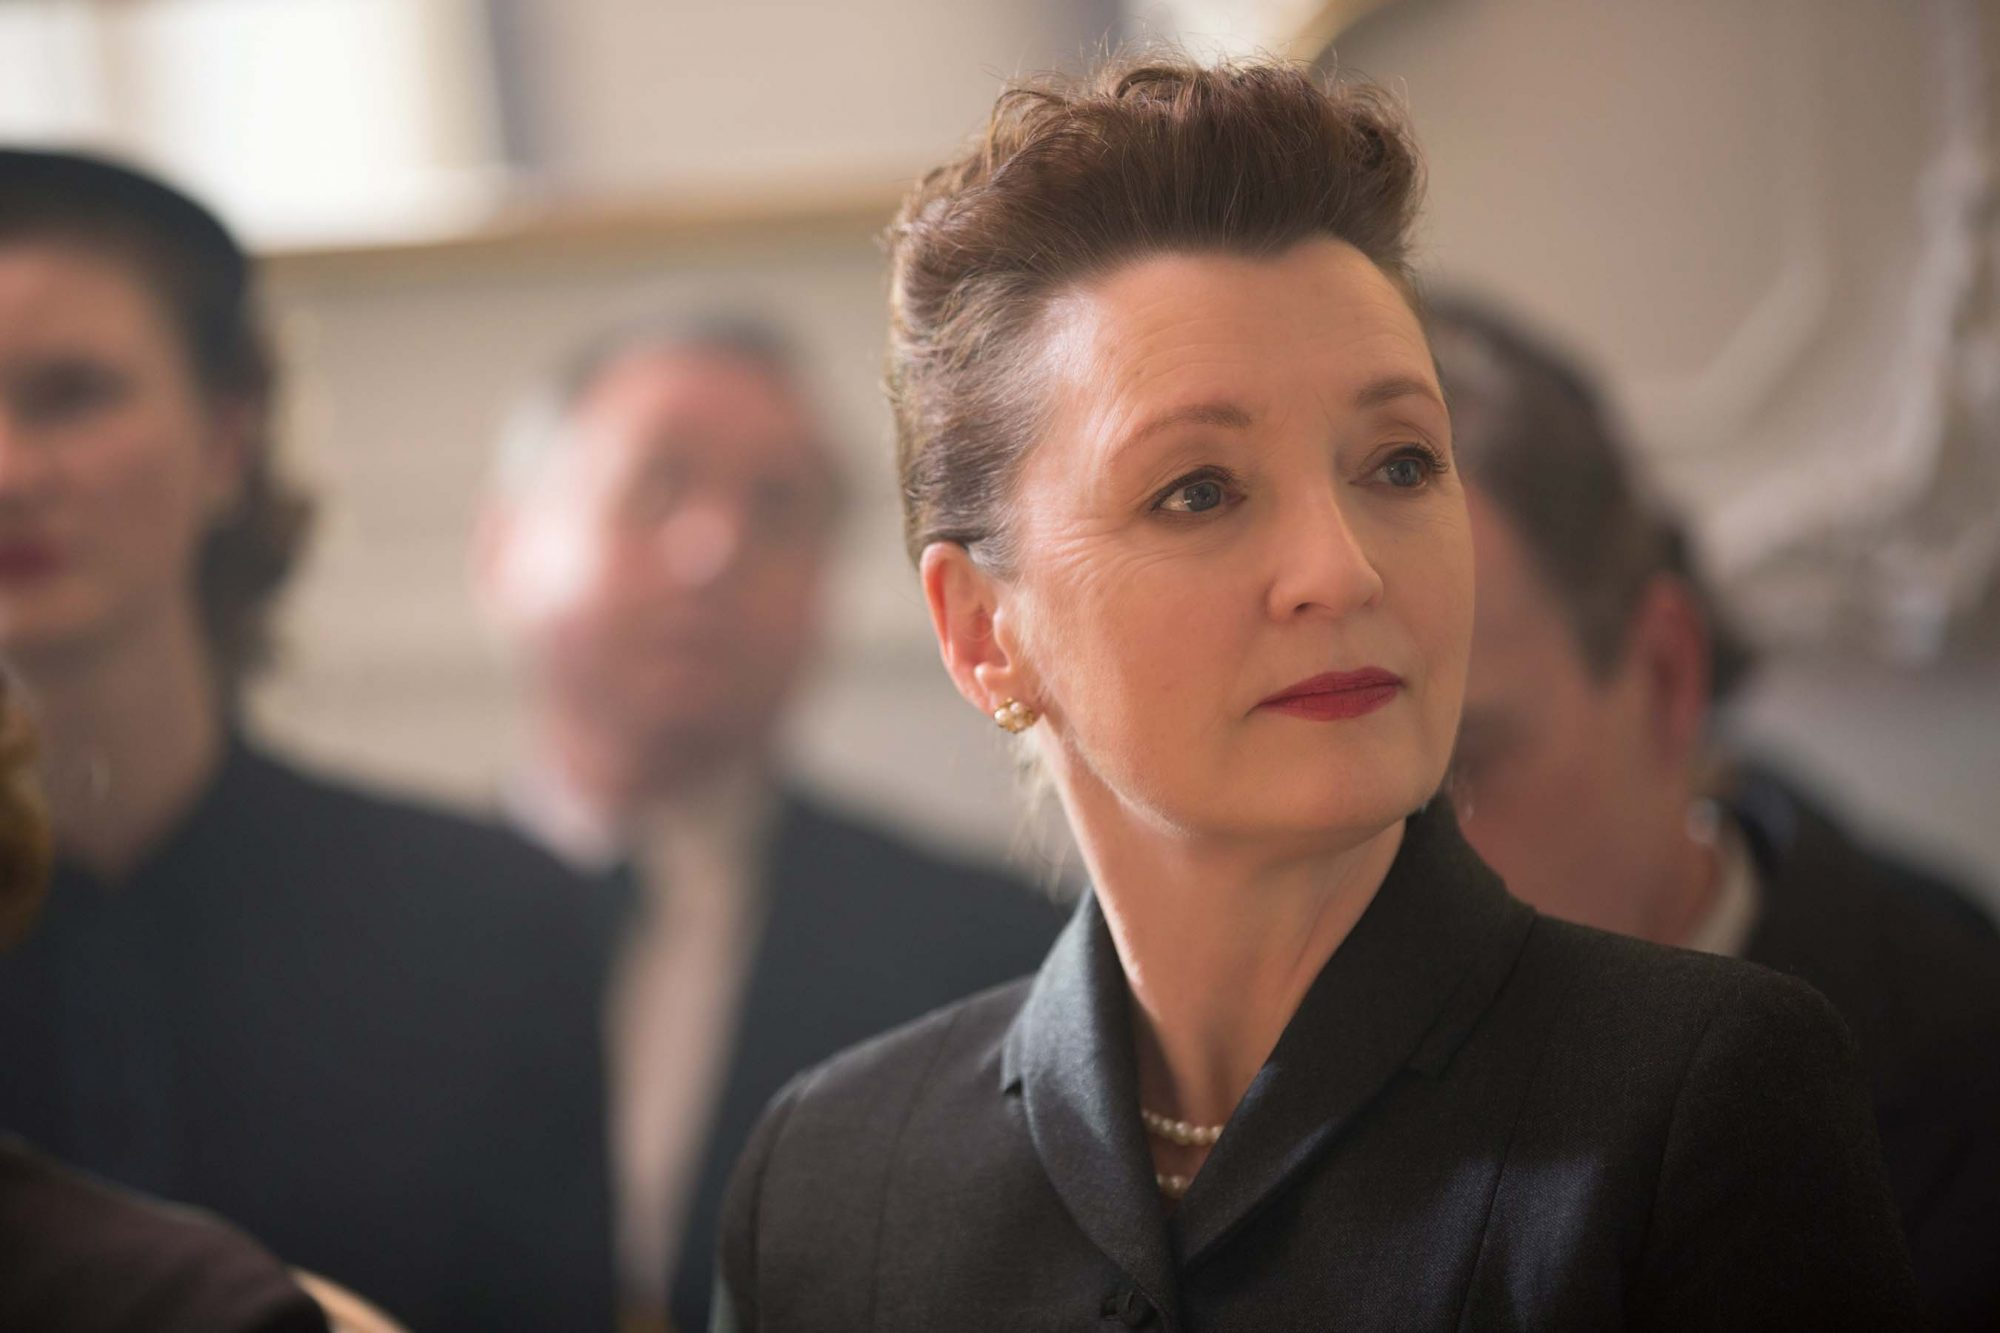 SURPRISE: Lesley Manville for Best Supporting Actress